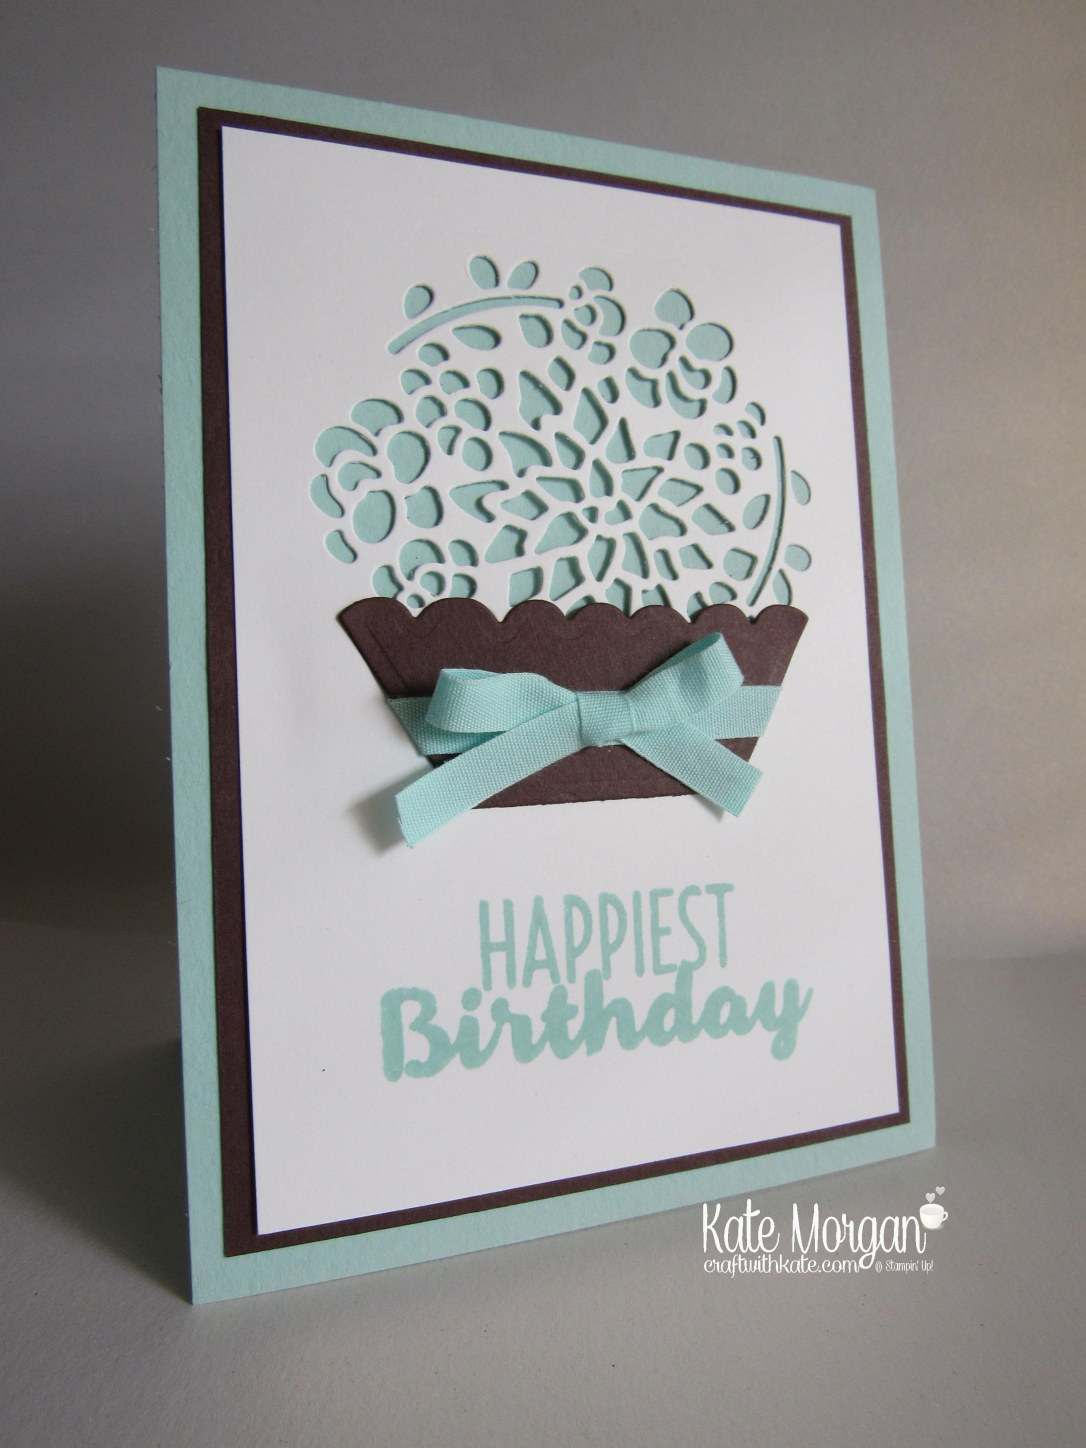 happy-birthday-window-box-card-by-kate-morgan-stampin-up-demonstrator-australia-occasions-2017-handmade-feminine-card-diy